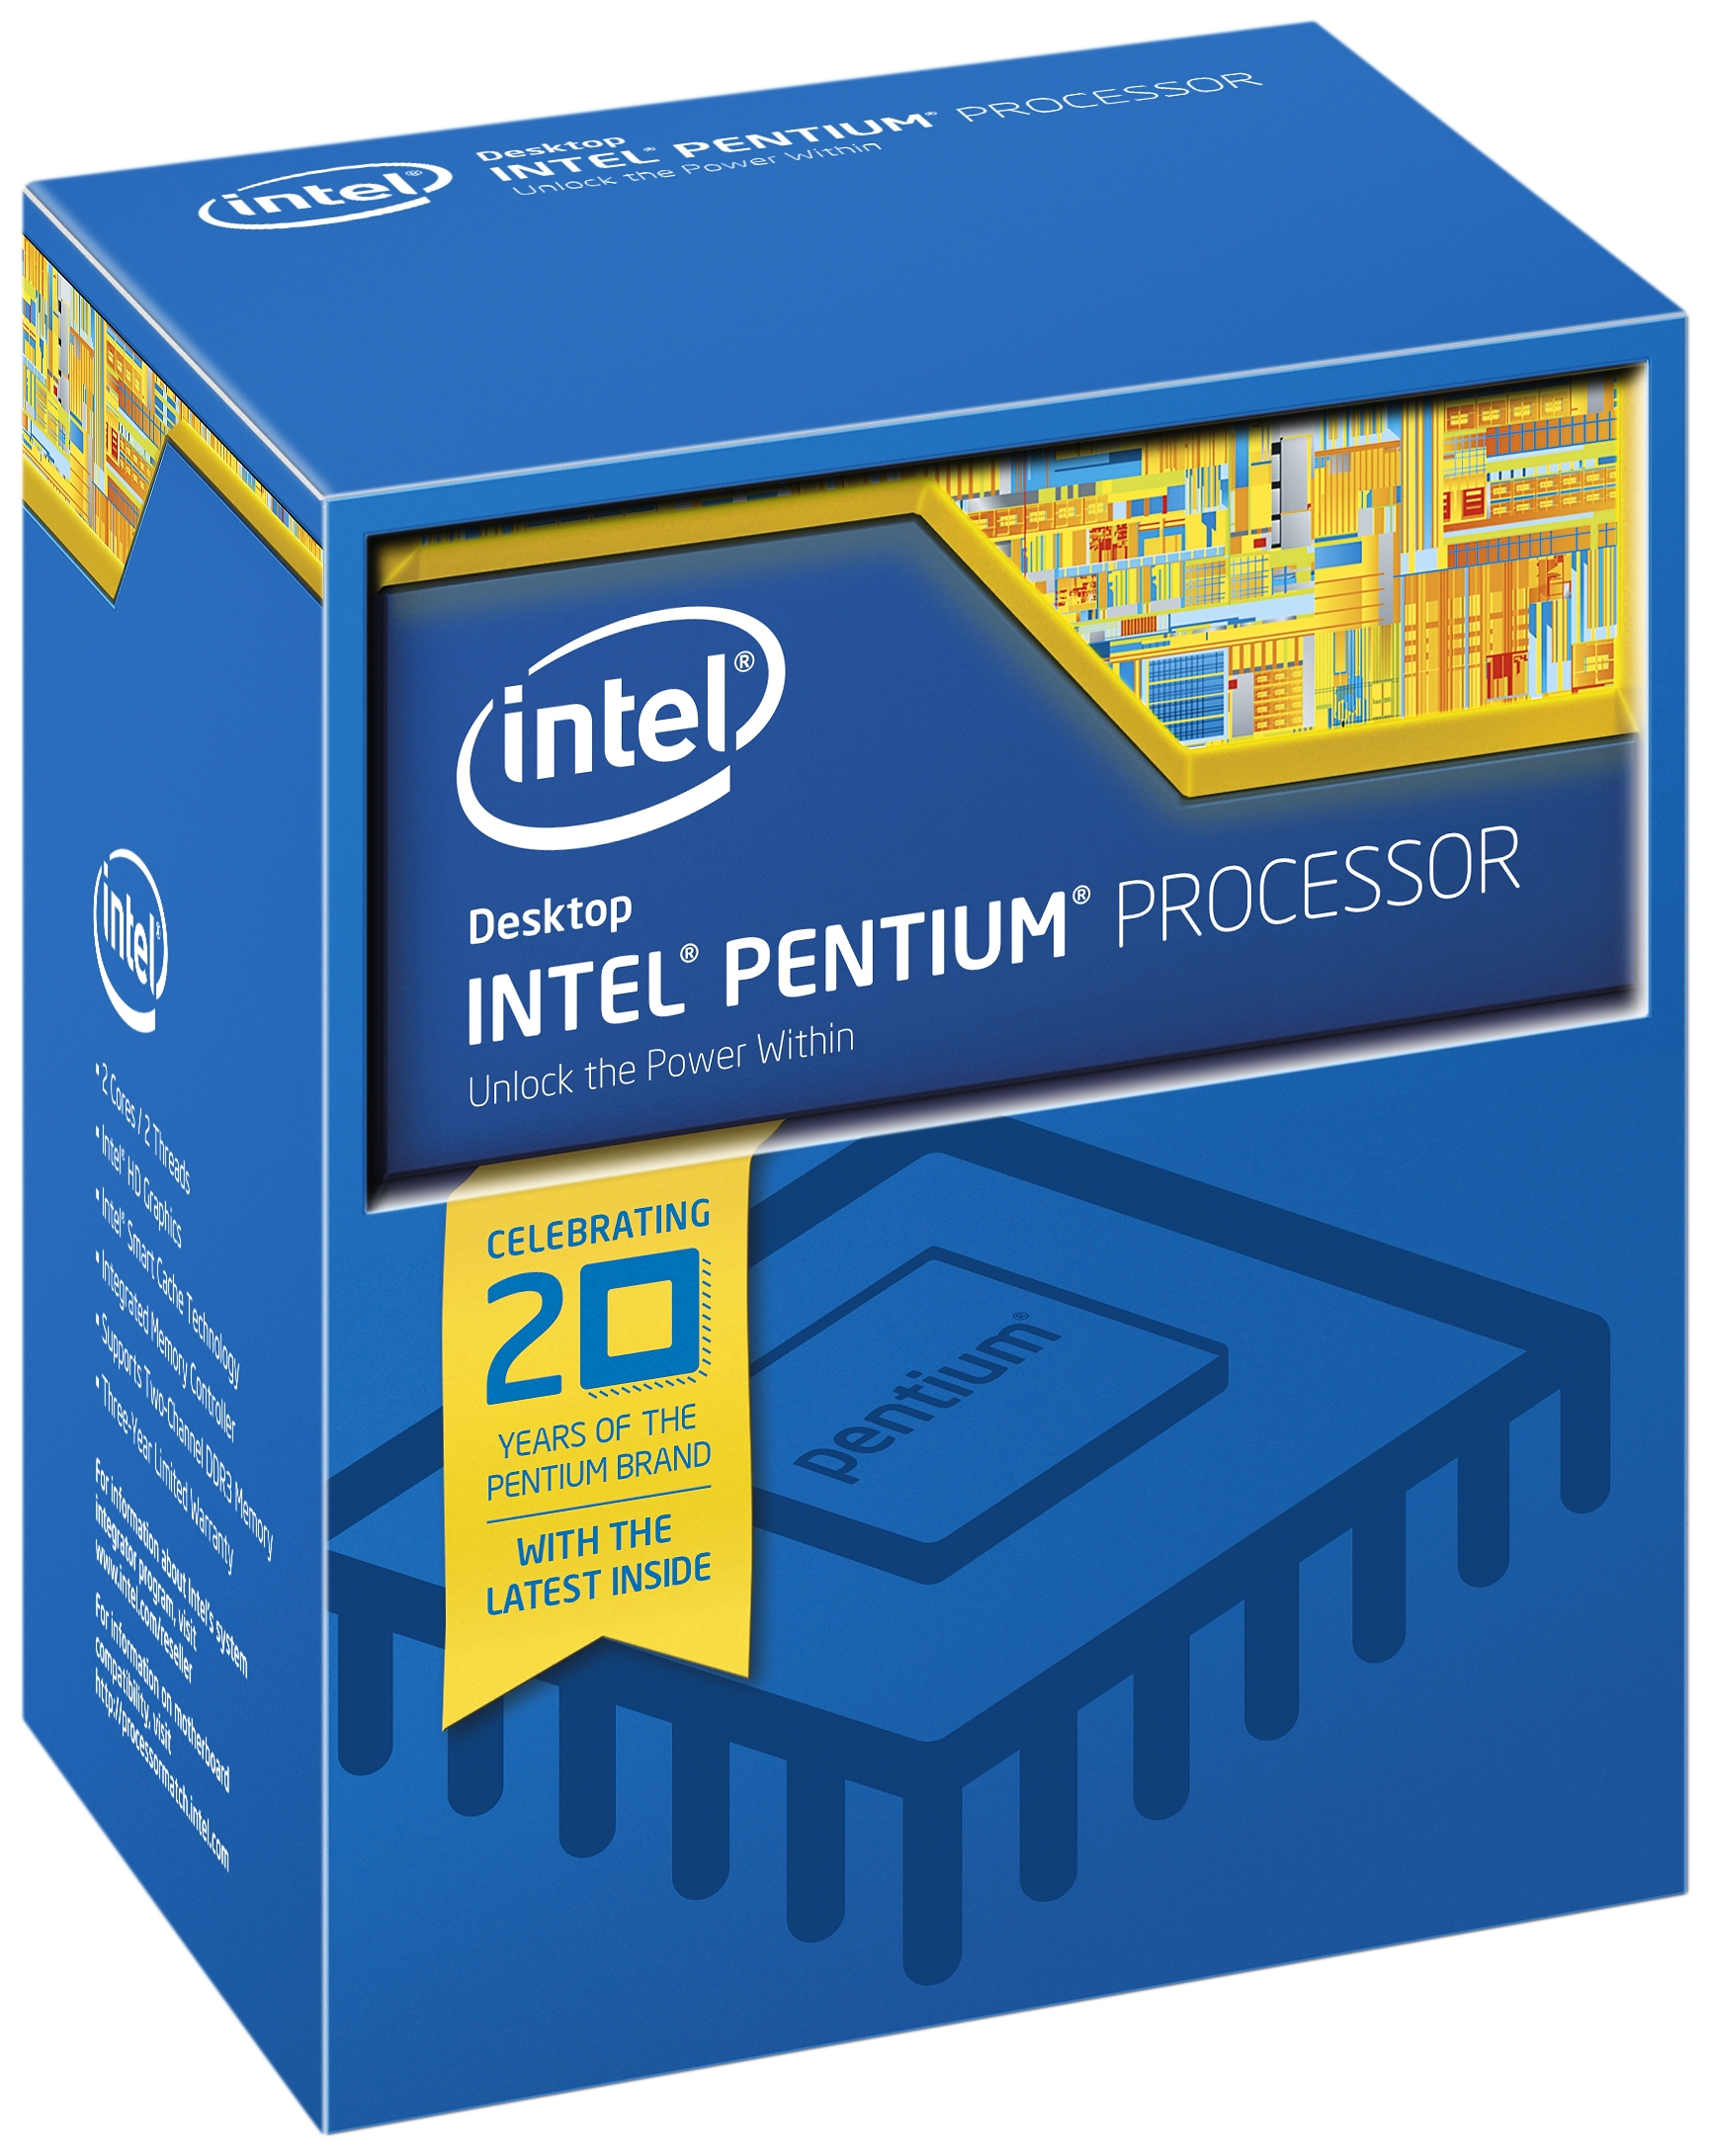 Intel Pentium ® ® Processor G4400 (3M Cache, 3.30 GHz) 3.3GHz 3MB Smart Cache Box processor